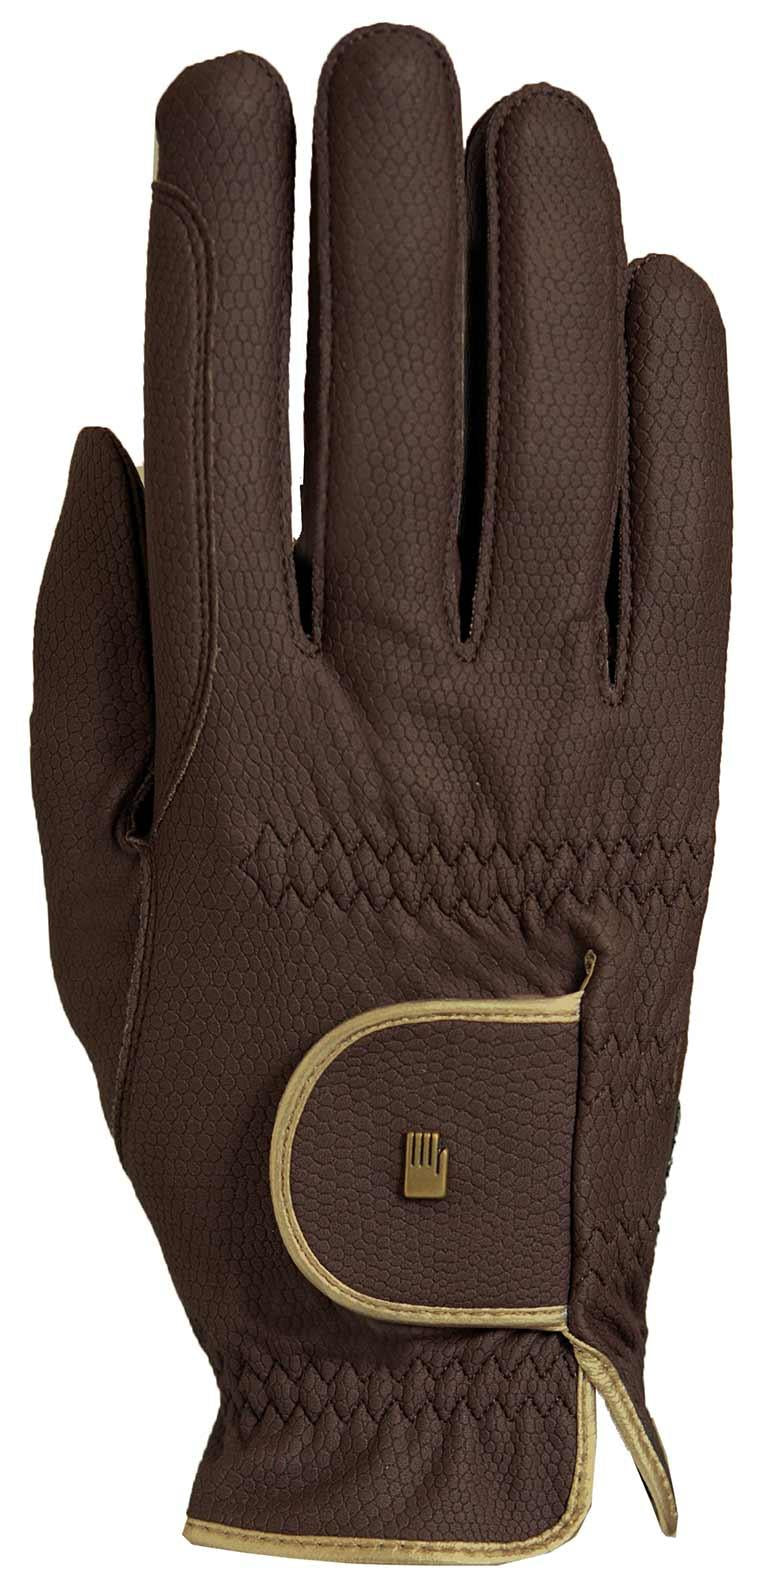 Roeckl ''Brown Gold Lona'' Riding Gloves